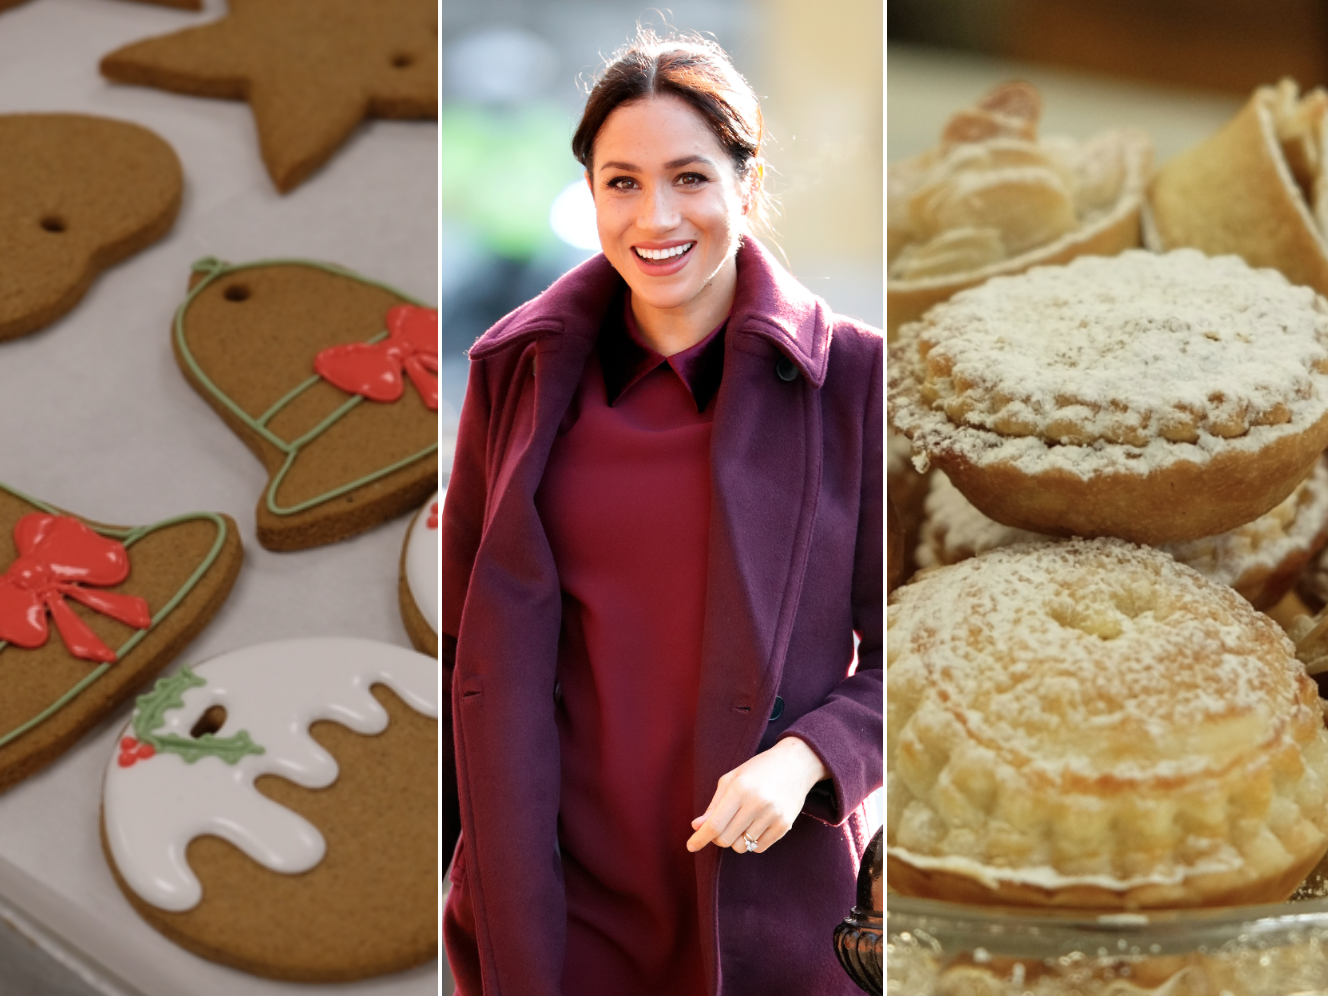 The Queen's Pastry Chefs Revealed Two Classic Holiday Recipes The Royals Love